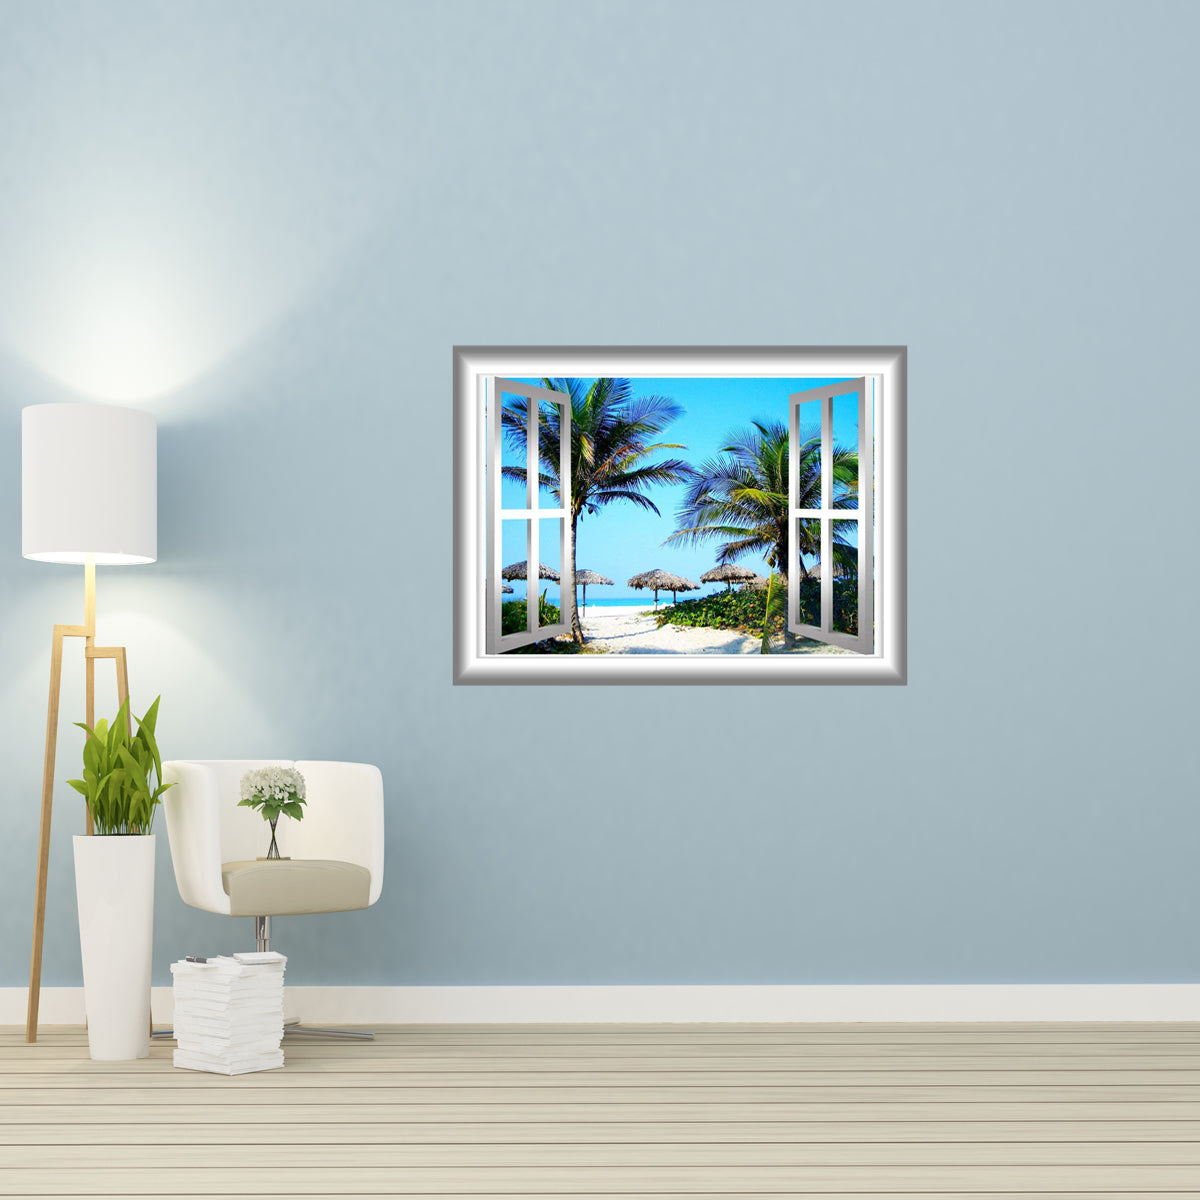 Vwaq 3d Beach Wall Decals Palm Tree Wall Sticker Peel And Stick Mural